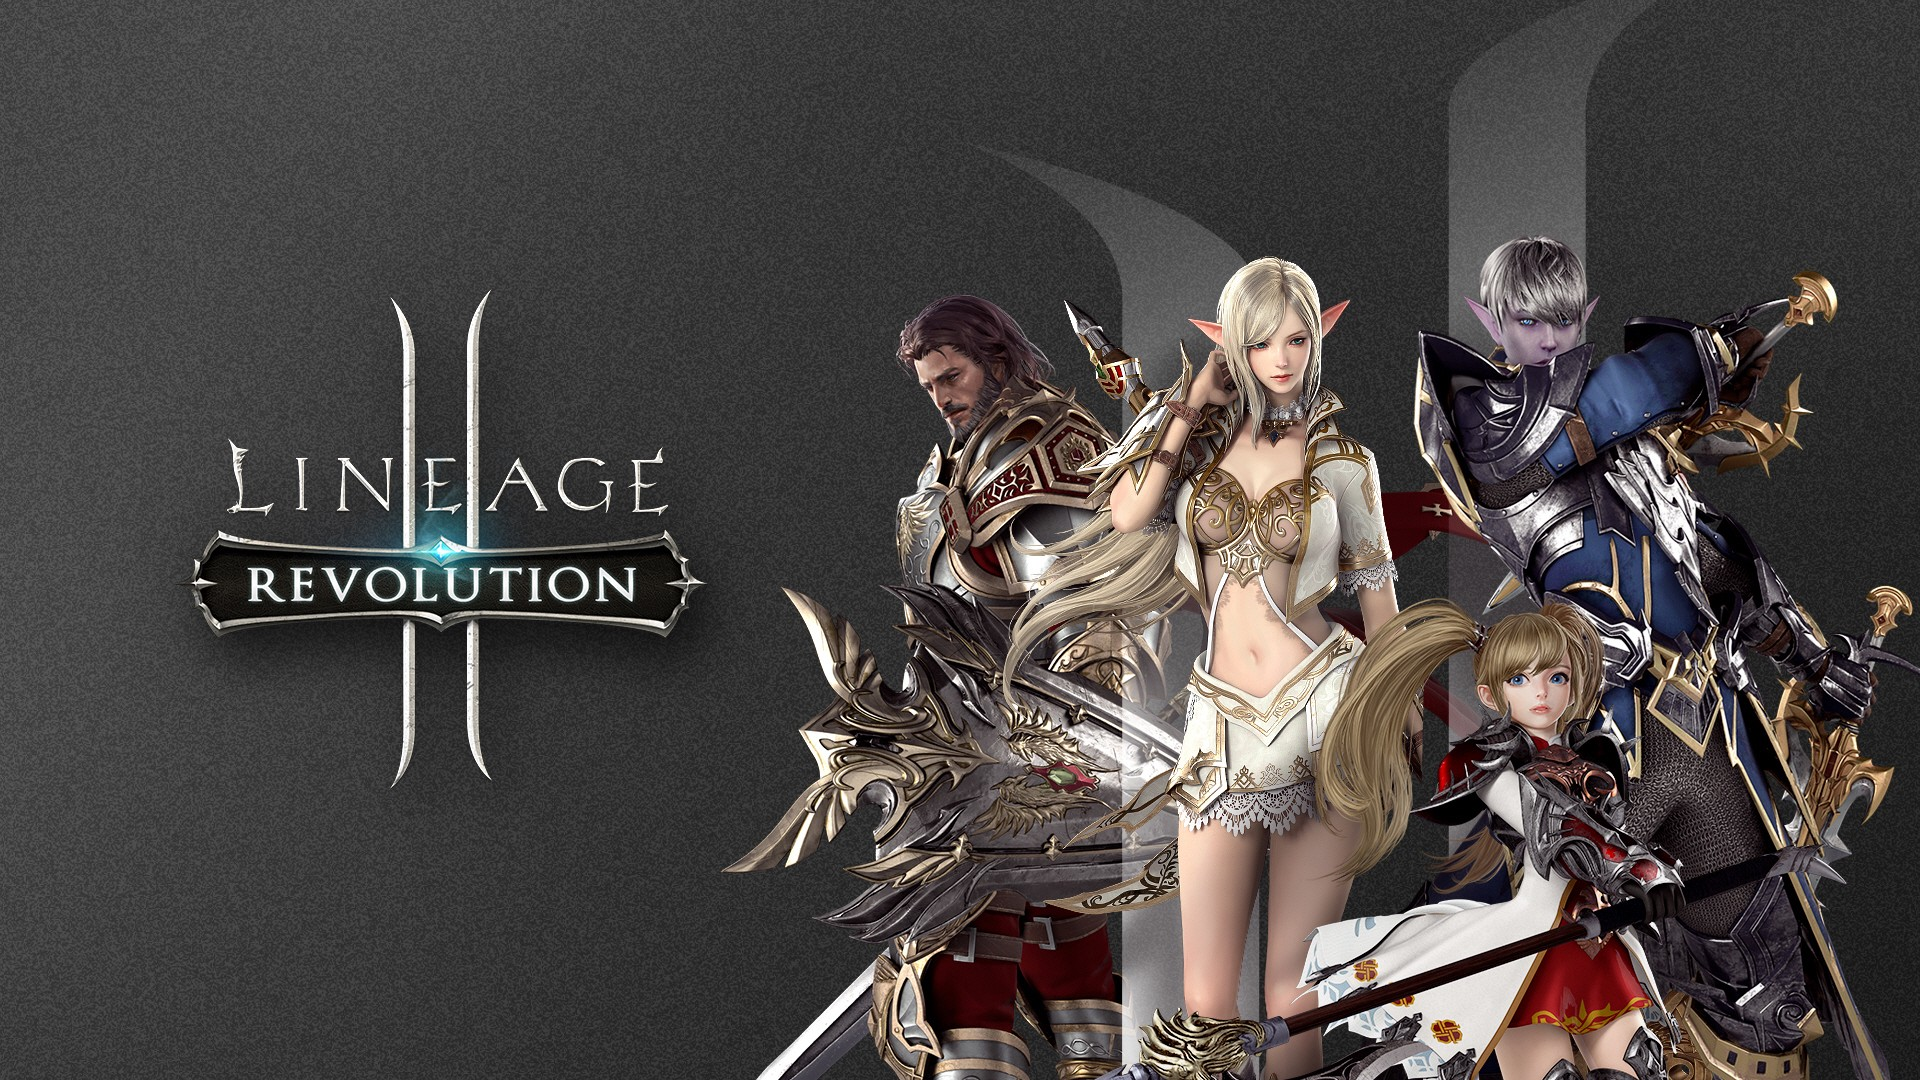 Four characters (a human, an elf, a dark elf, and a dwarf) stand together on the right side of the picture against a gray background. The logo for Lineage 2: Revolution sits on the left side of the picture.